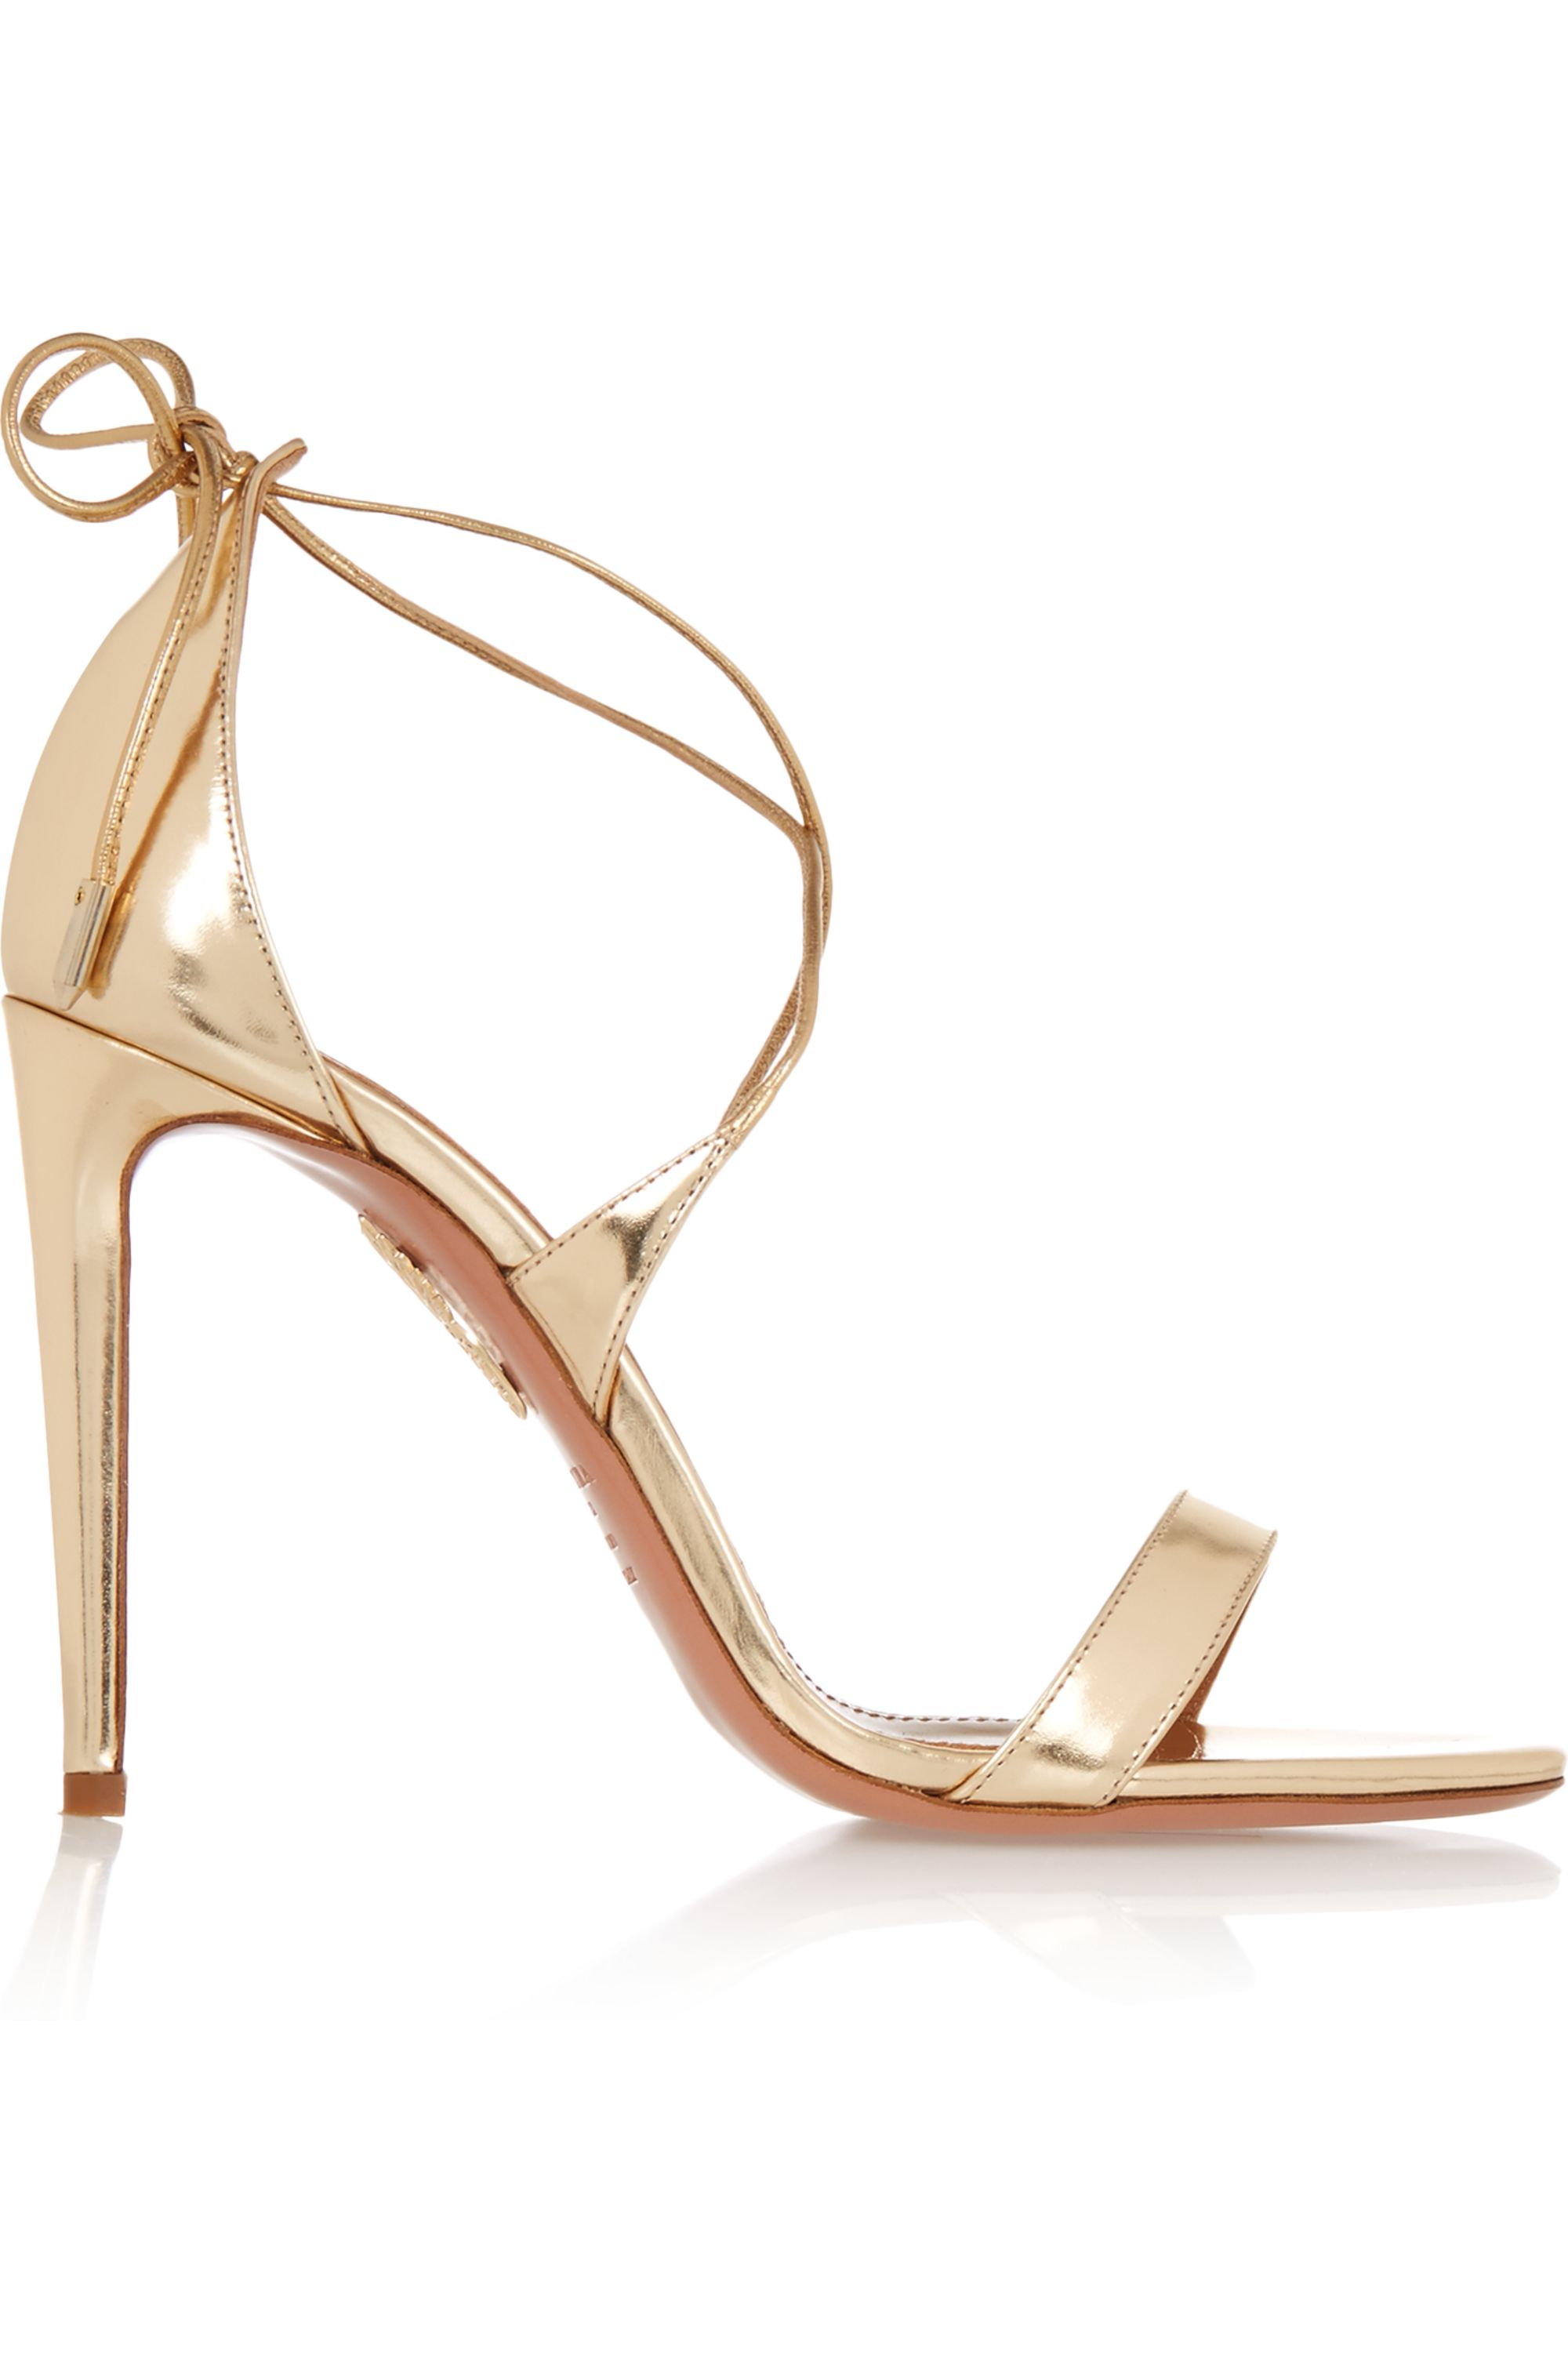 Aquazzura Linda metallic leather sandals